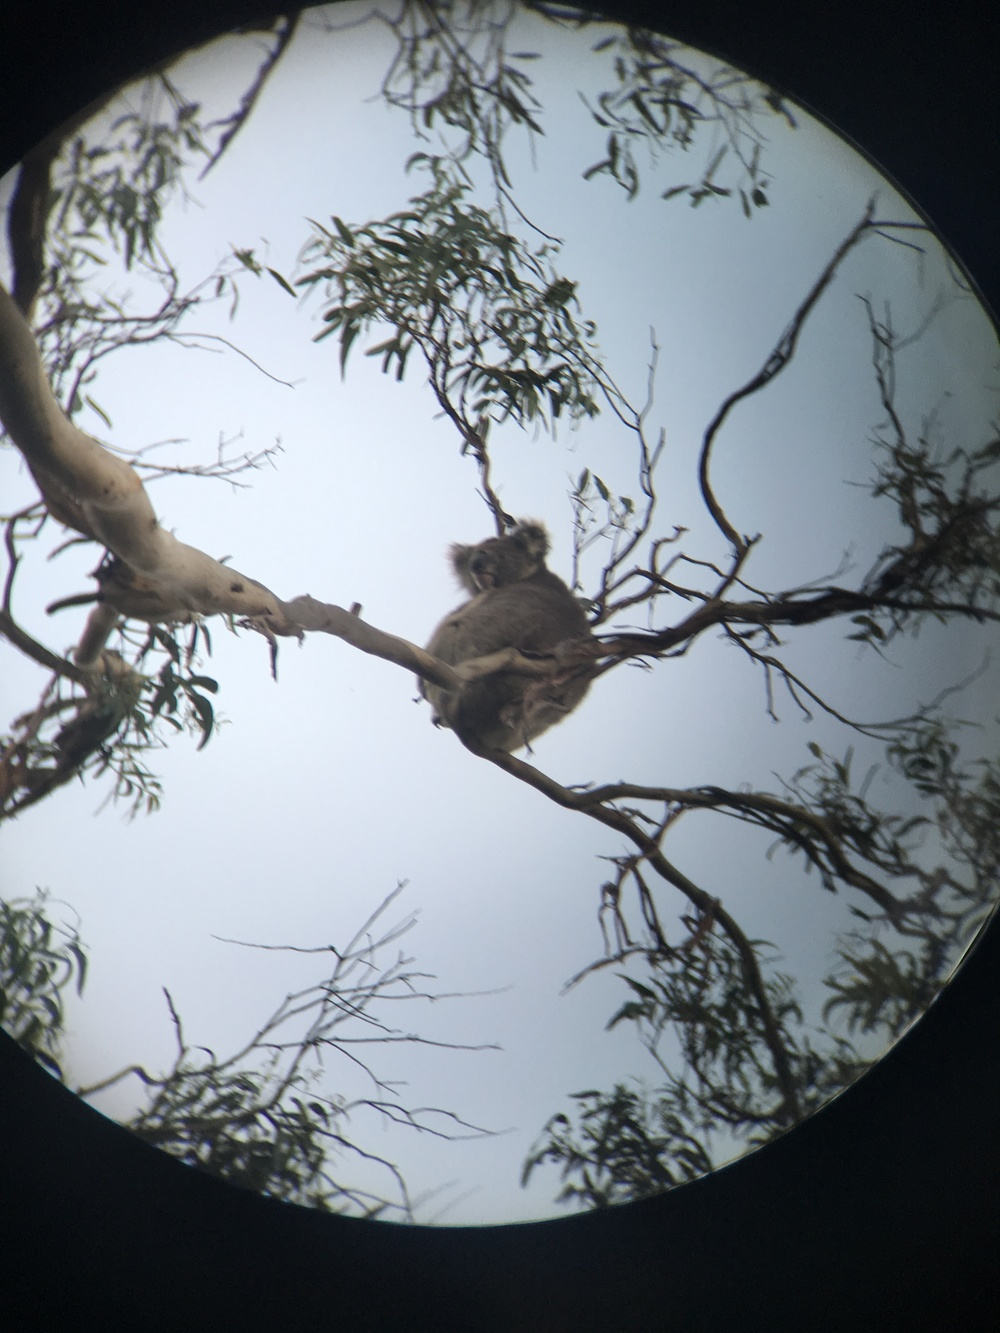 First Koala sighting!